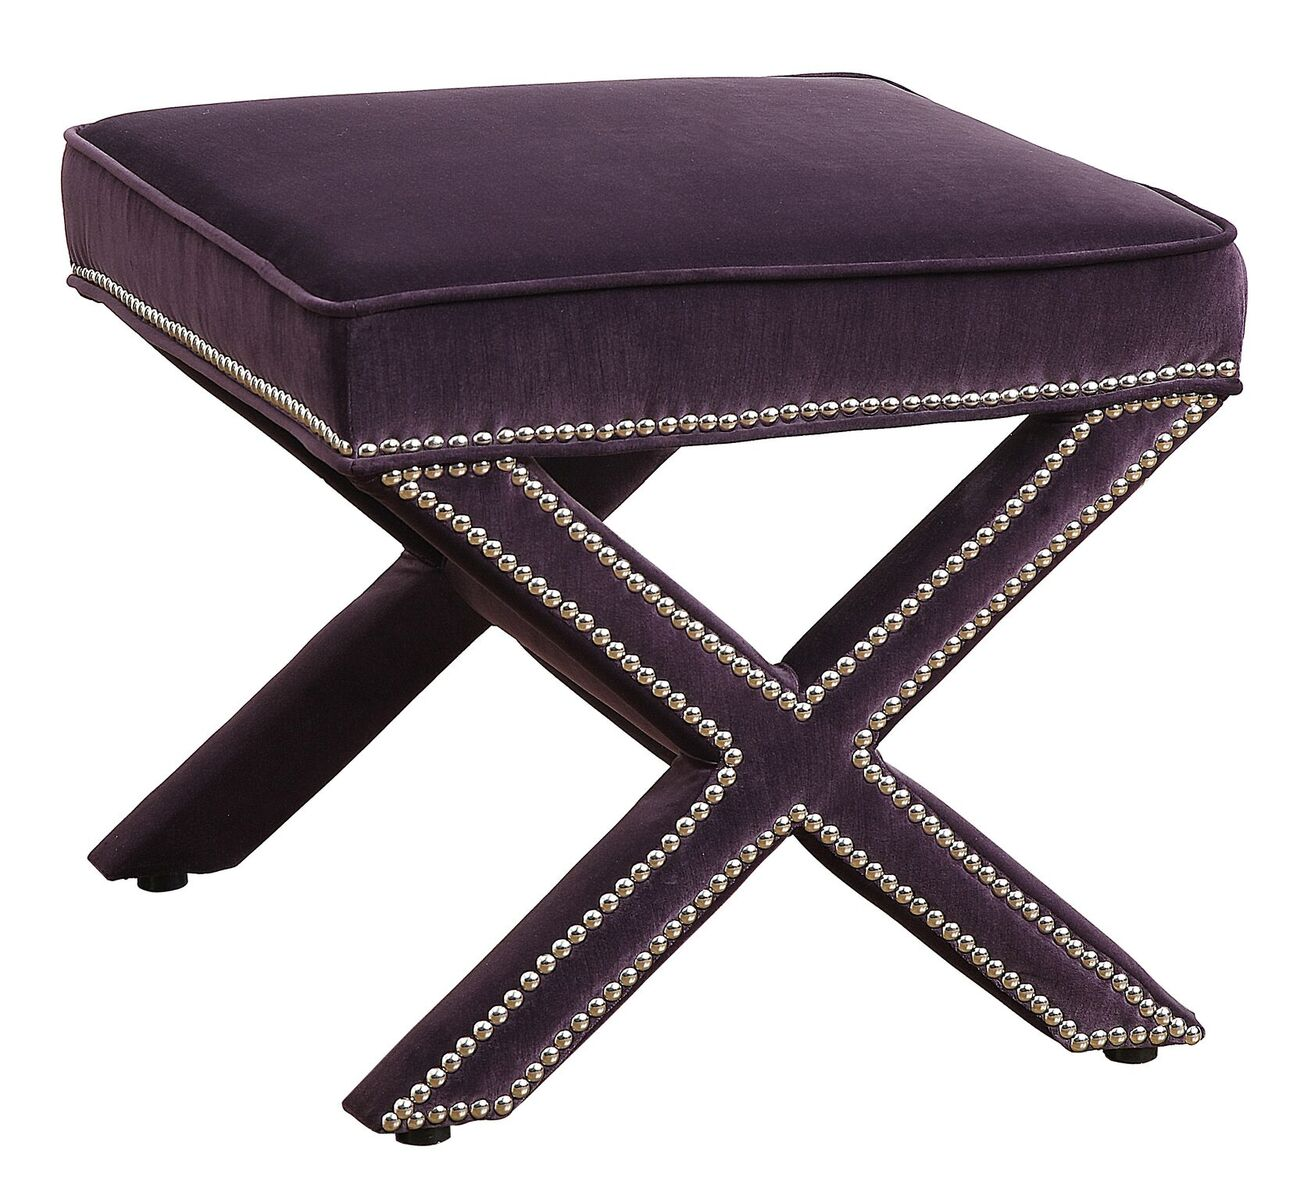 Enjoyable Reese Purple Velvet Ottoman By Tov Furniture Dailytribune Chair Design For Home Dailytribuneorg